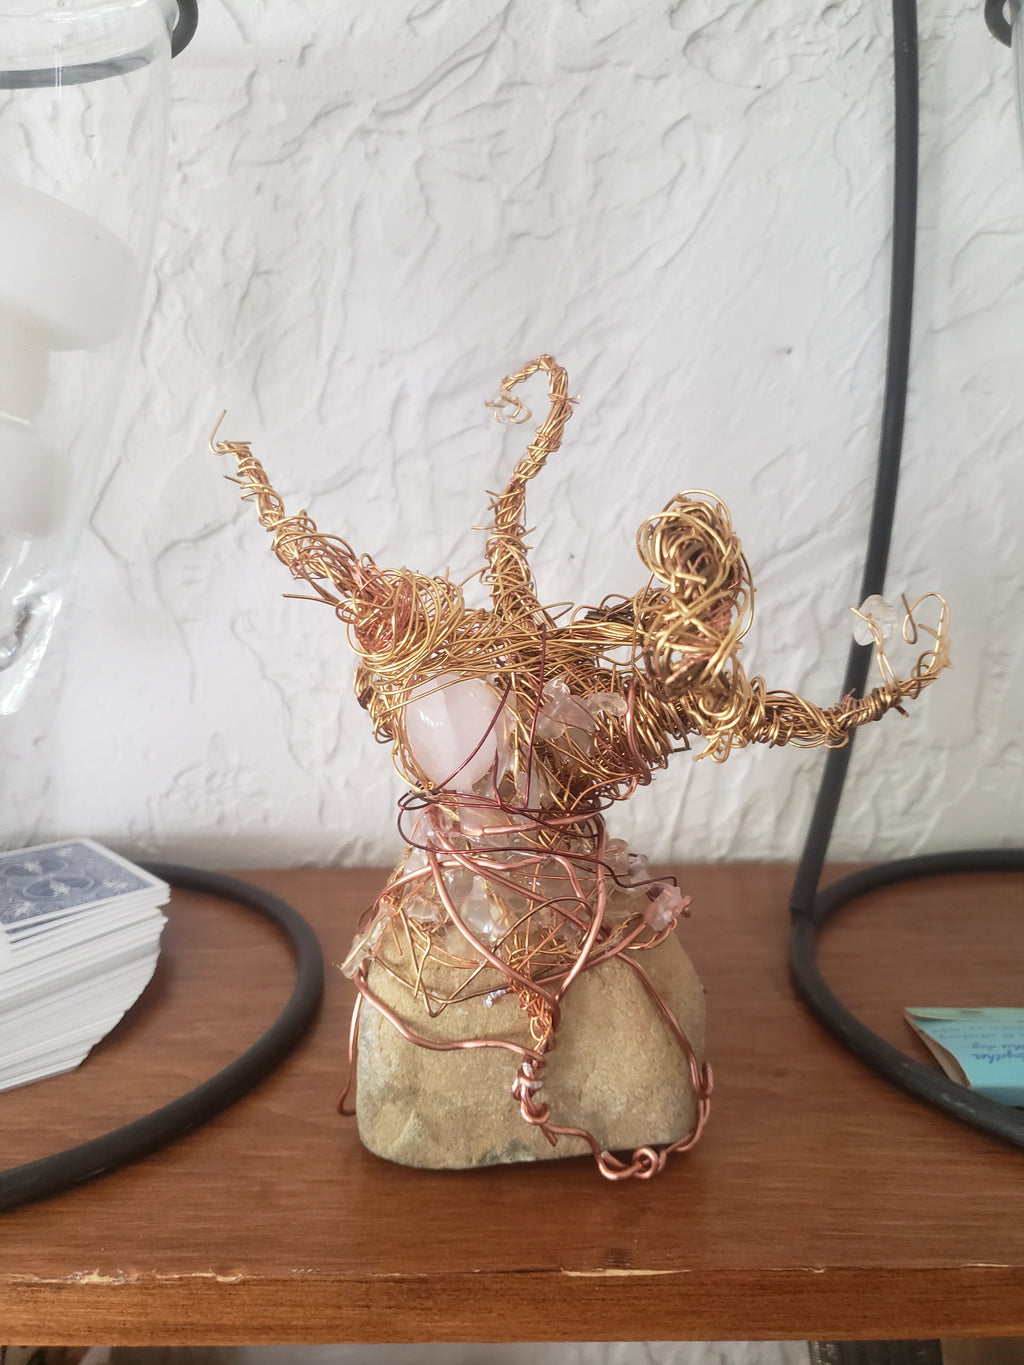 Whipping Copper Tree w/ Polished Rose Quartz - Copper Wire Sculpture - Home/Table Decor